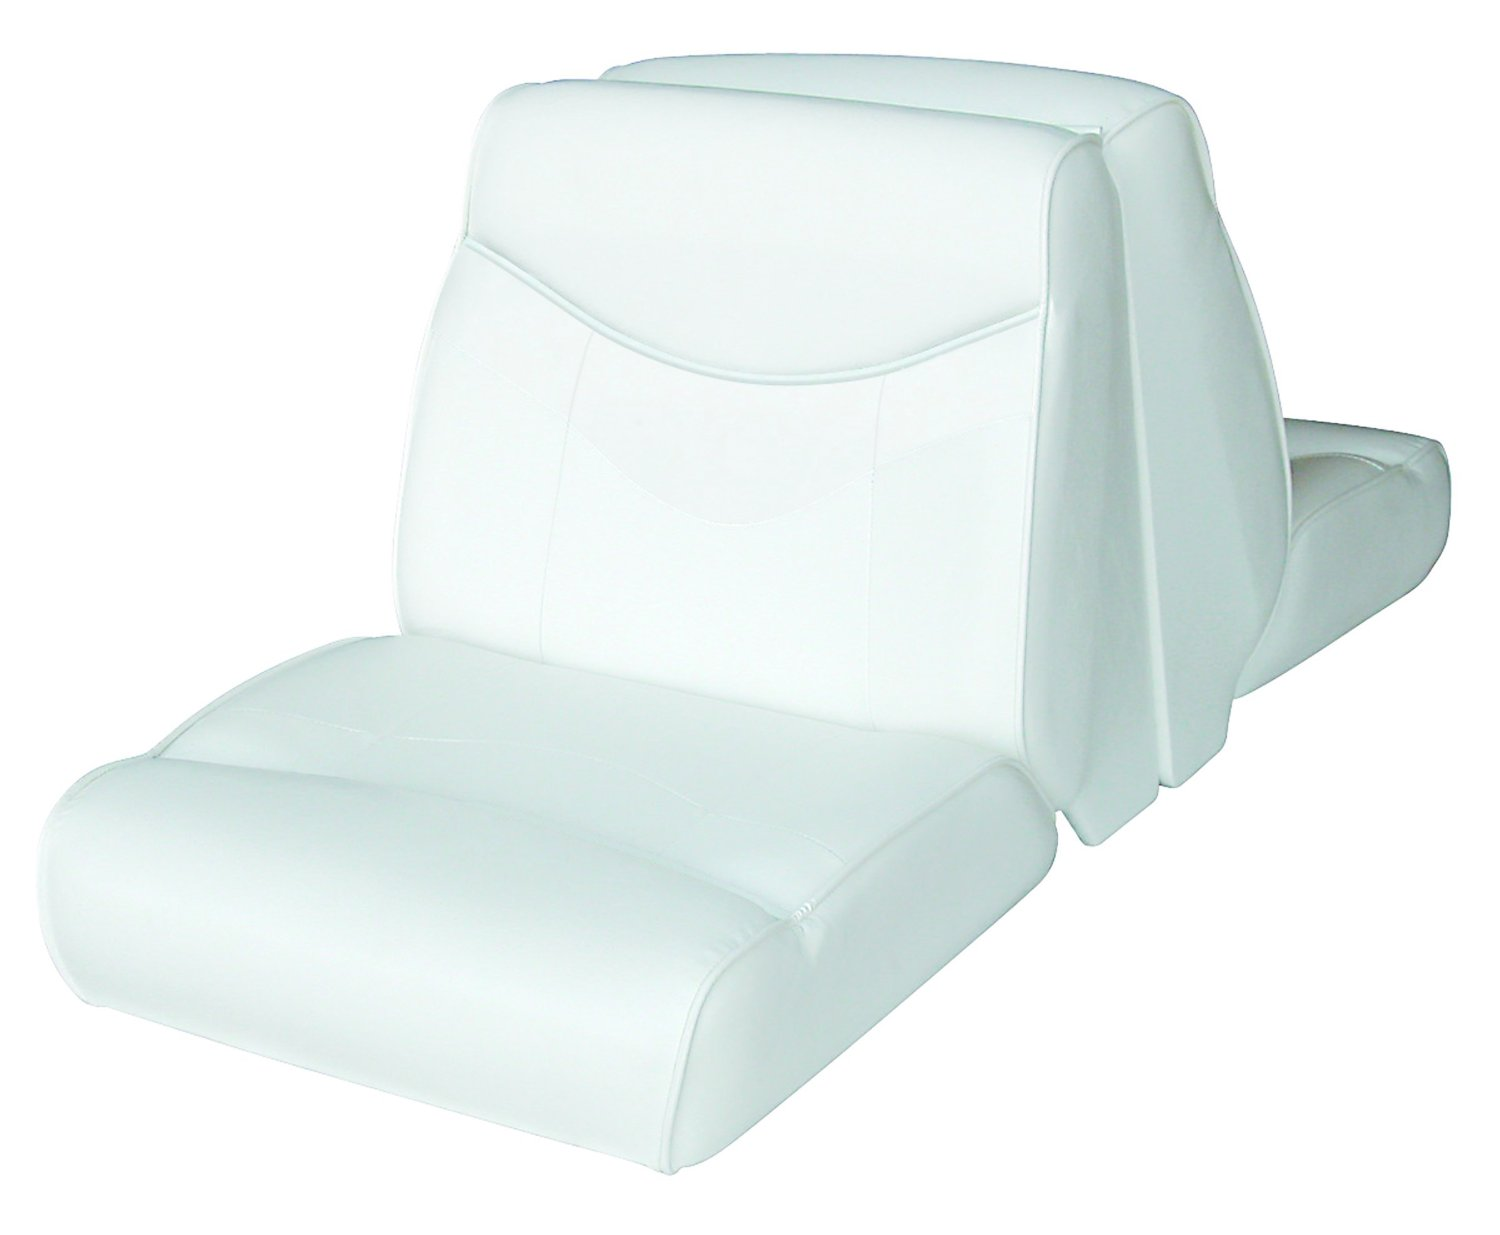 Terrific Buy Wise Wd1173 0030 Bayliner Capri Replacement Seats In Caraccident5 Cool Chair Designs And Ideas Caraccident5Info